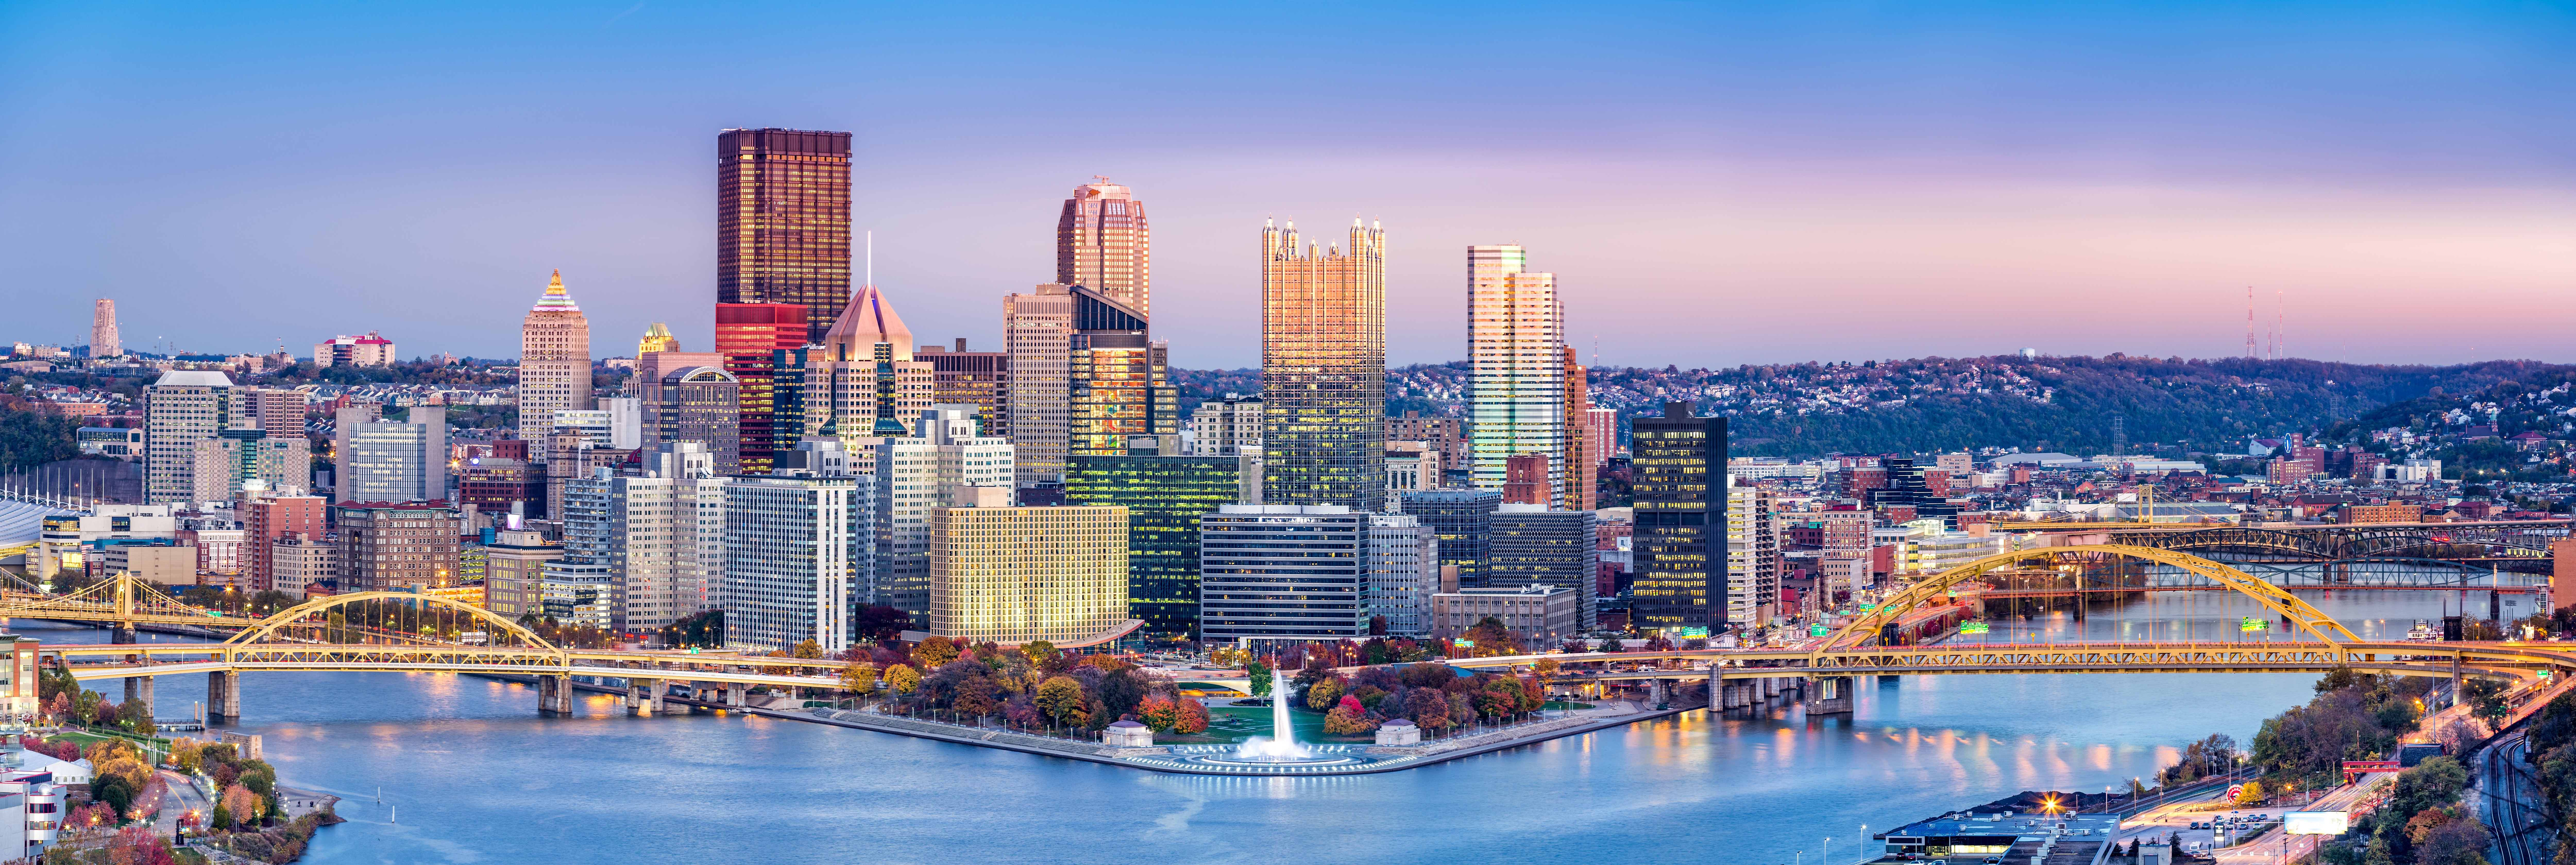 The city of Pittsburgh skyline.